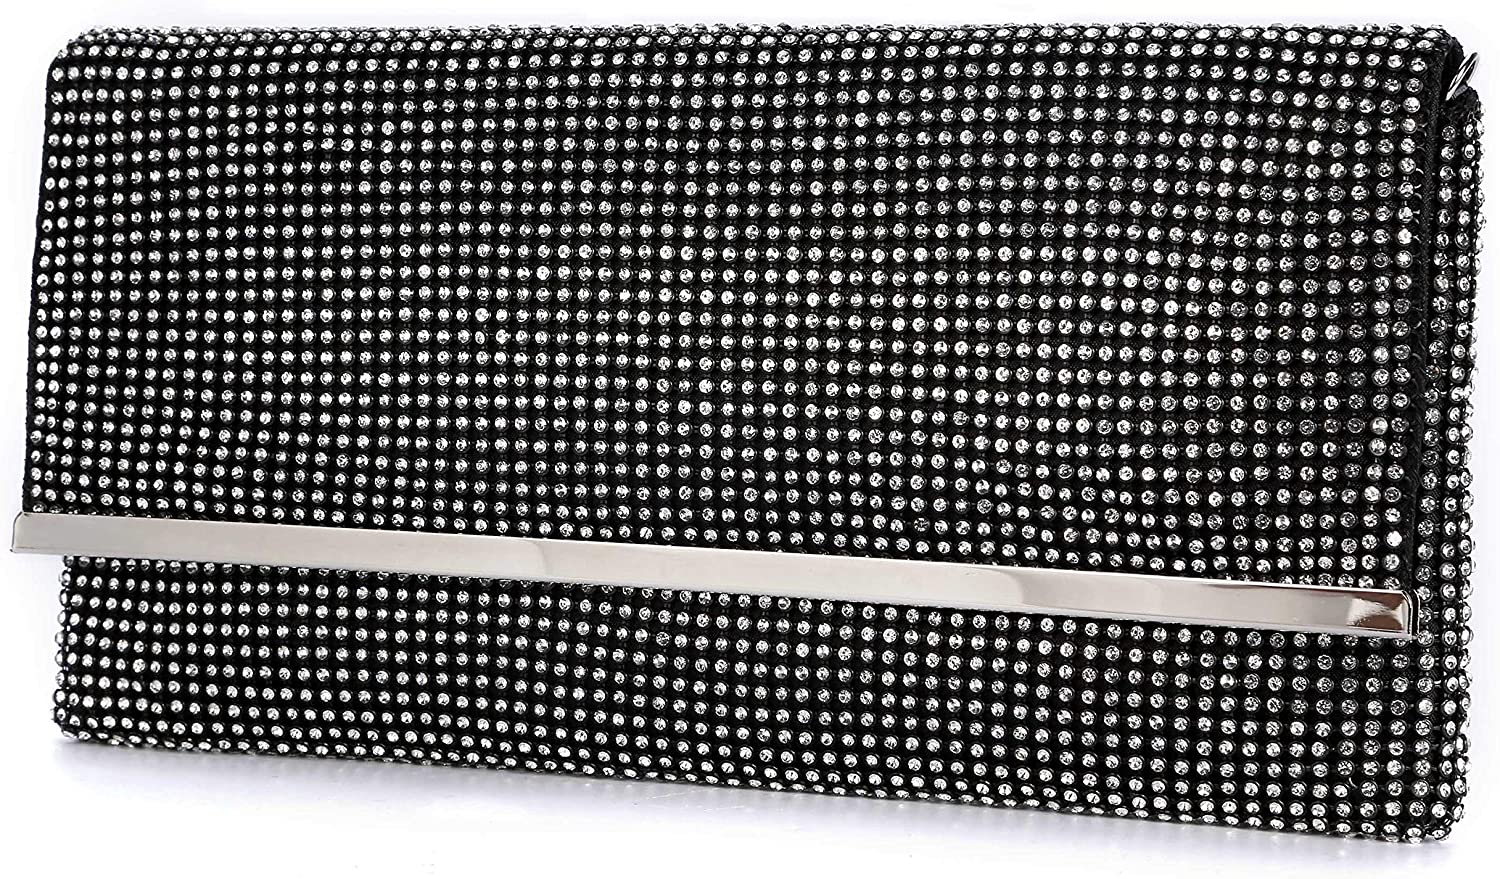 TanpellWomen's Bling Soft Rhinestone Crystal Evening Clutch Bags with Detachable Chain